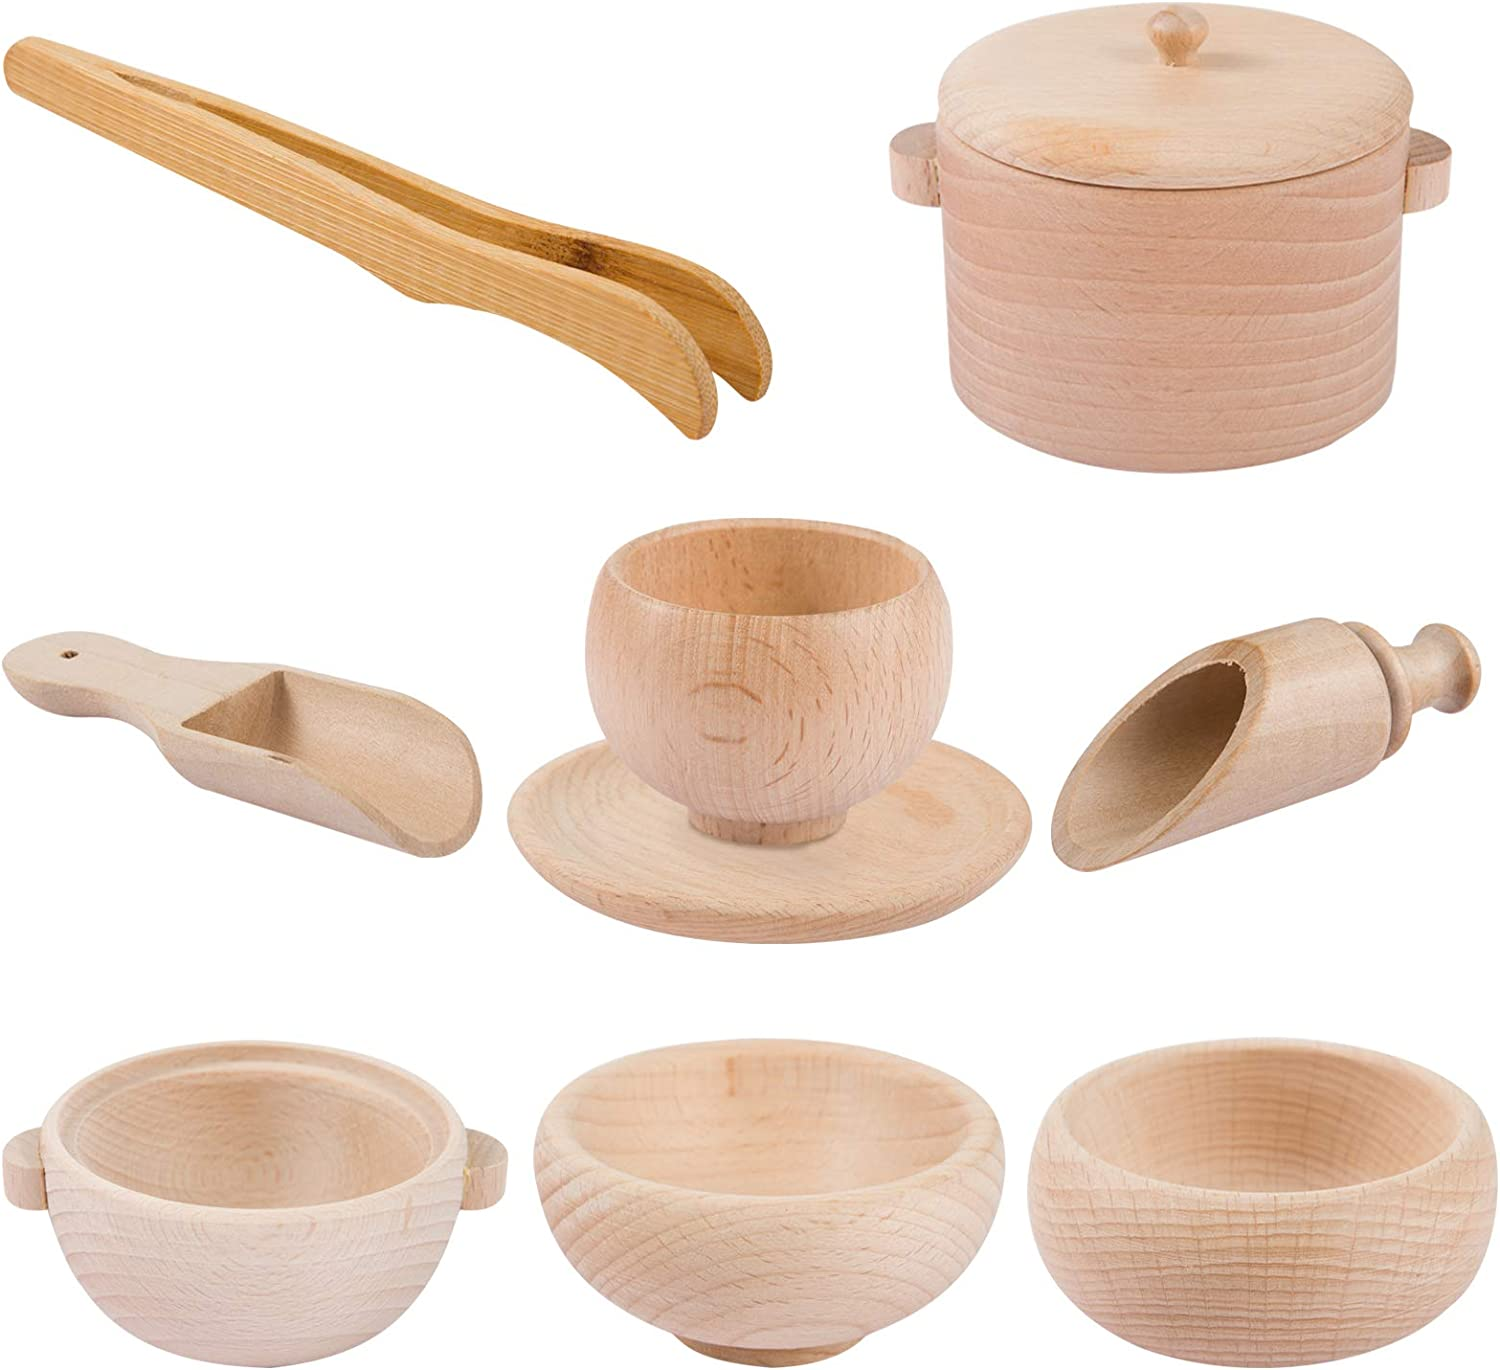 Set of 8 Toddlers Montessori Sensory Bin Tools- Wooden Waldorf Toys Dish Scoops and Tongs Set Educational Fine Motor Training Toys for Preschool Kids Children Toddlers Motor Transfer Work Learning